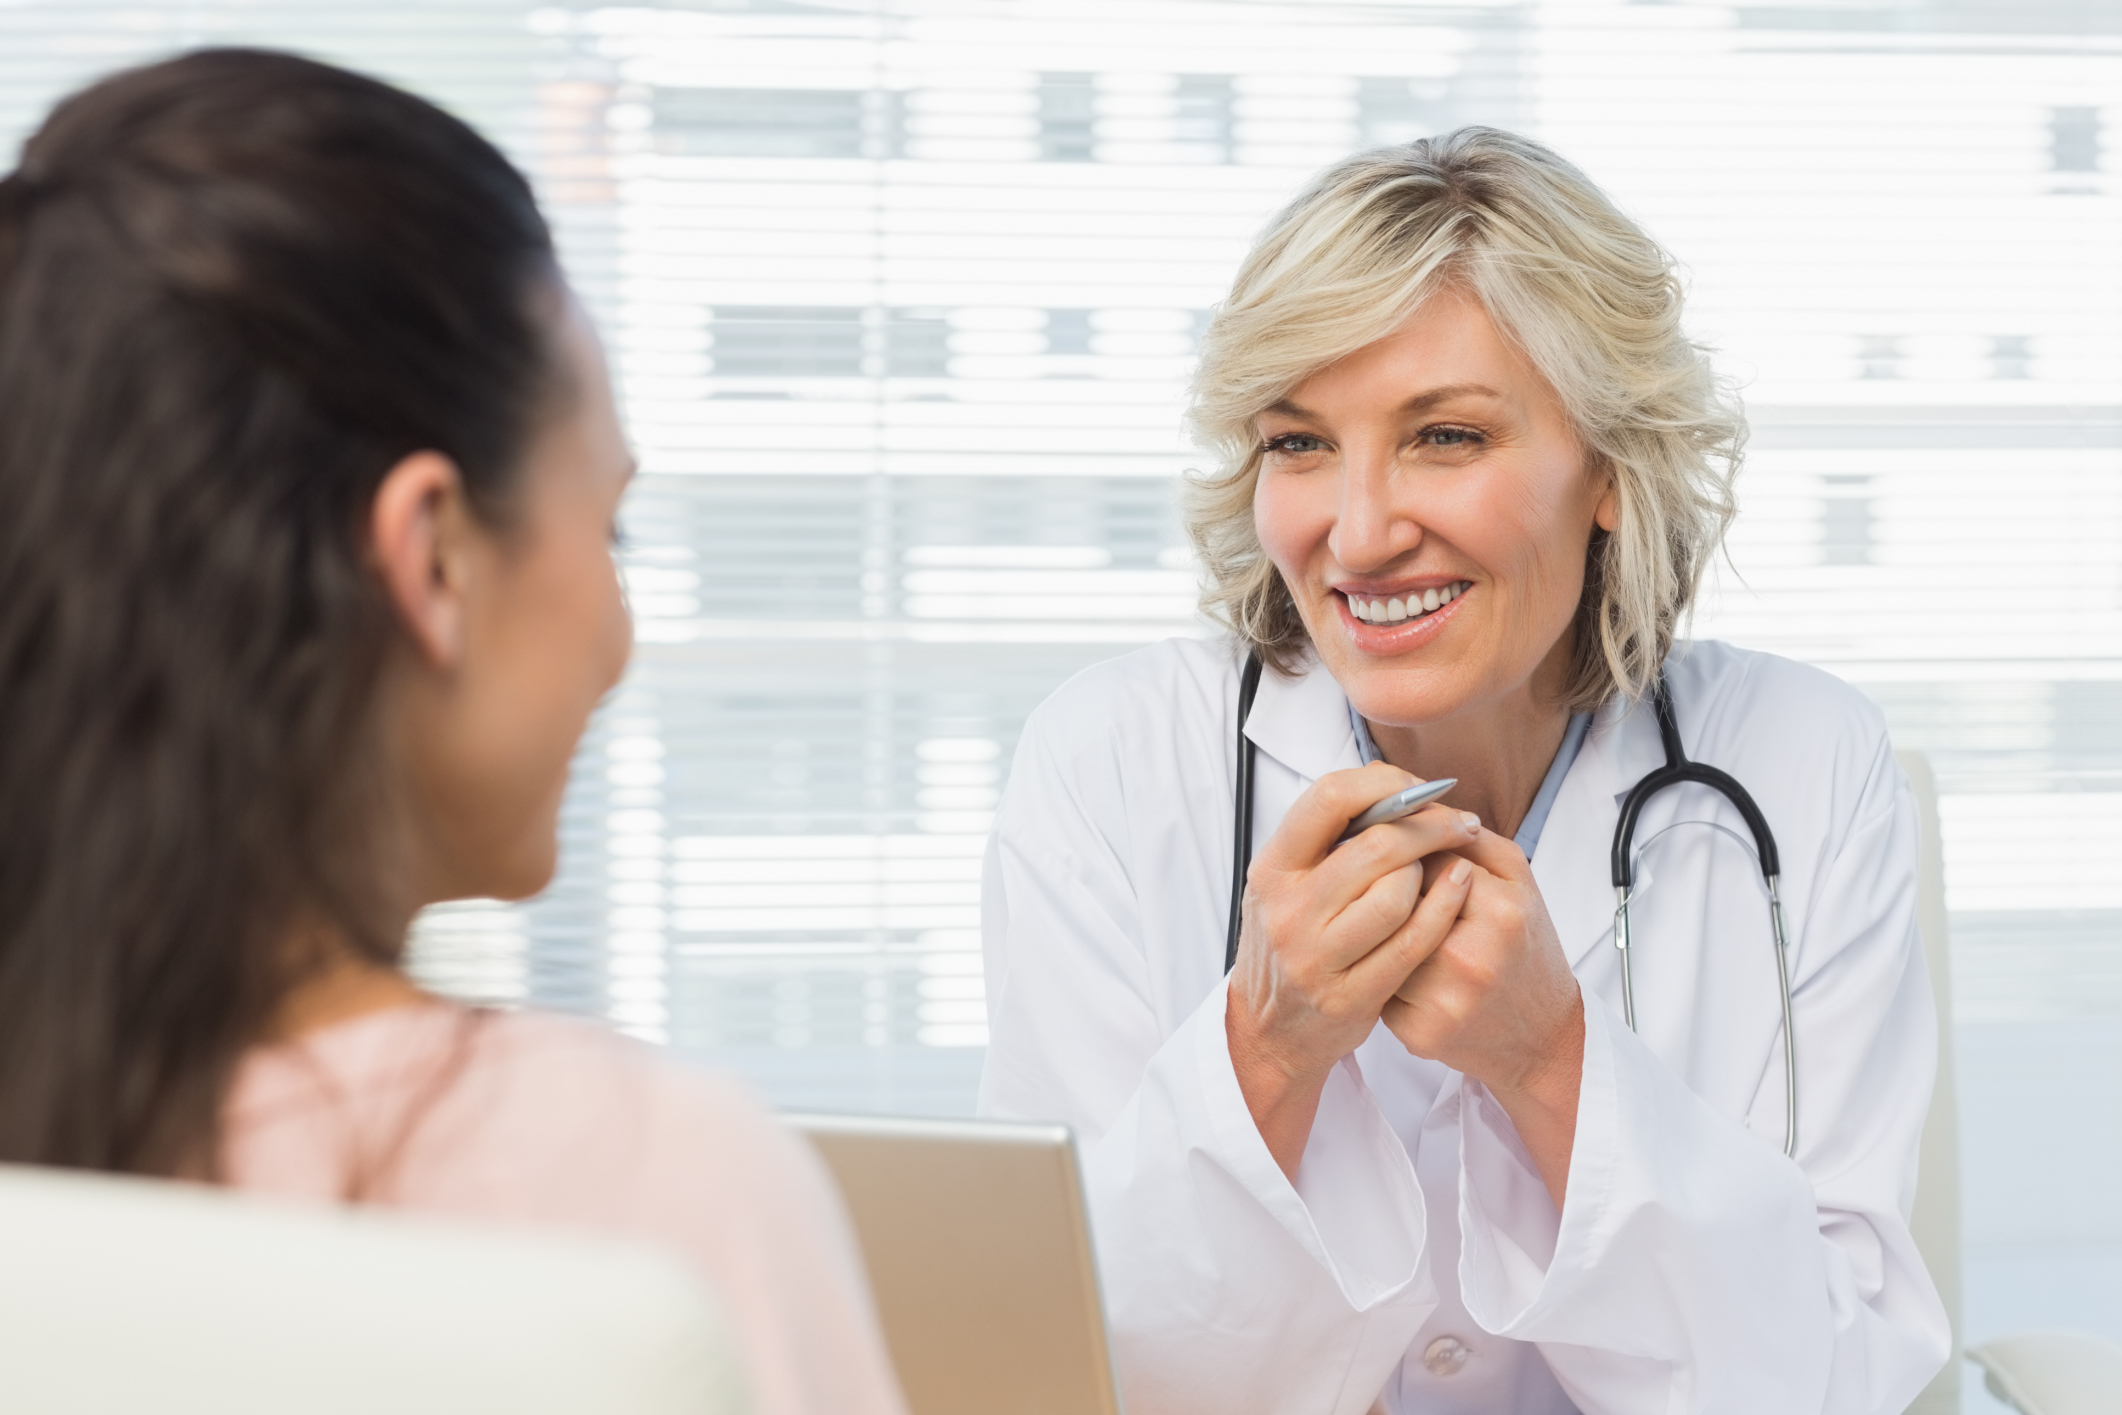 An Interview with a Consultant Psychiatrist